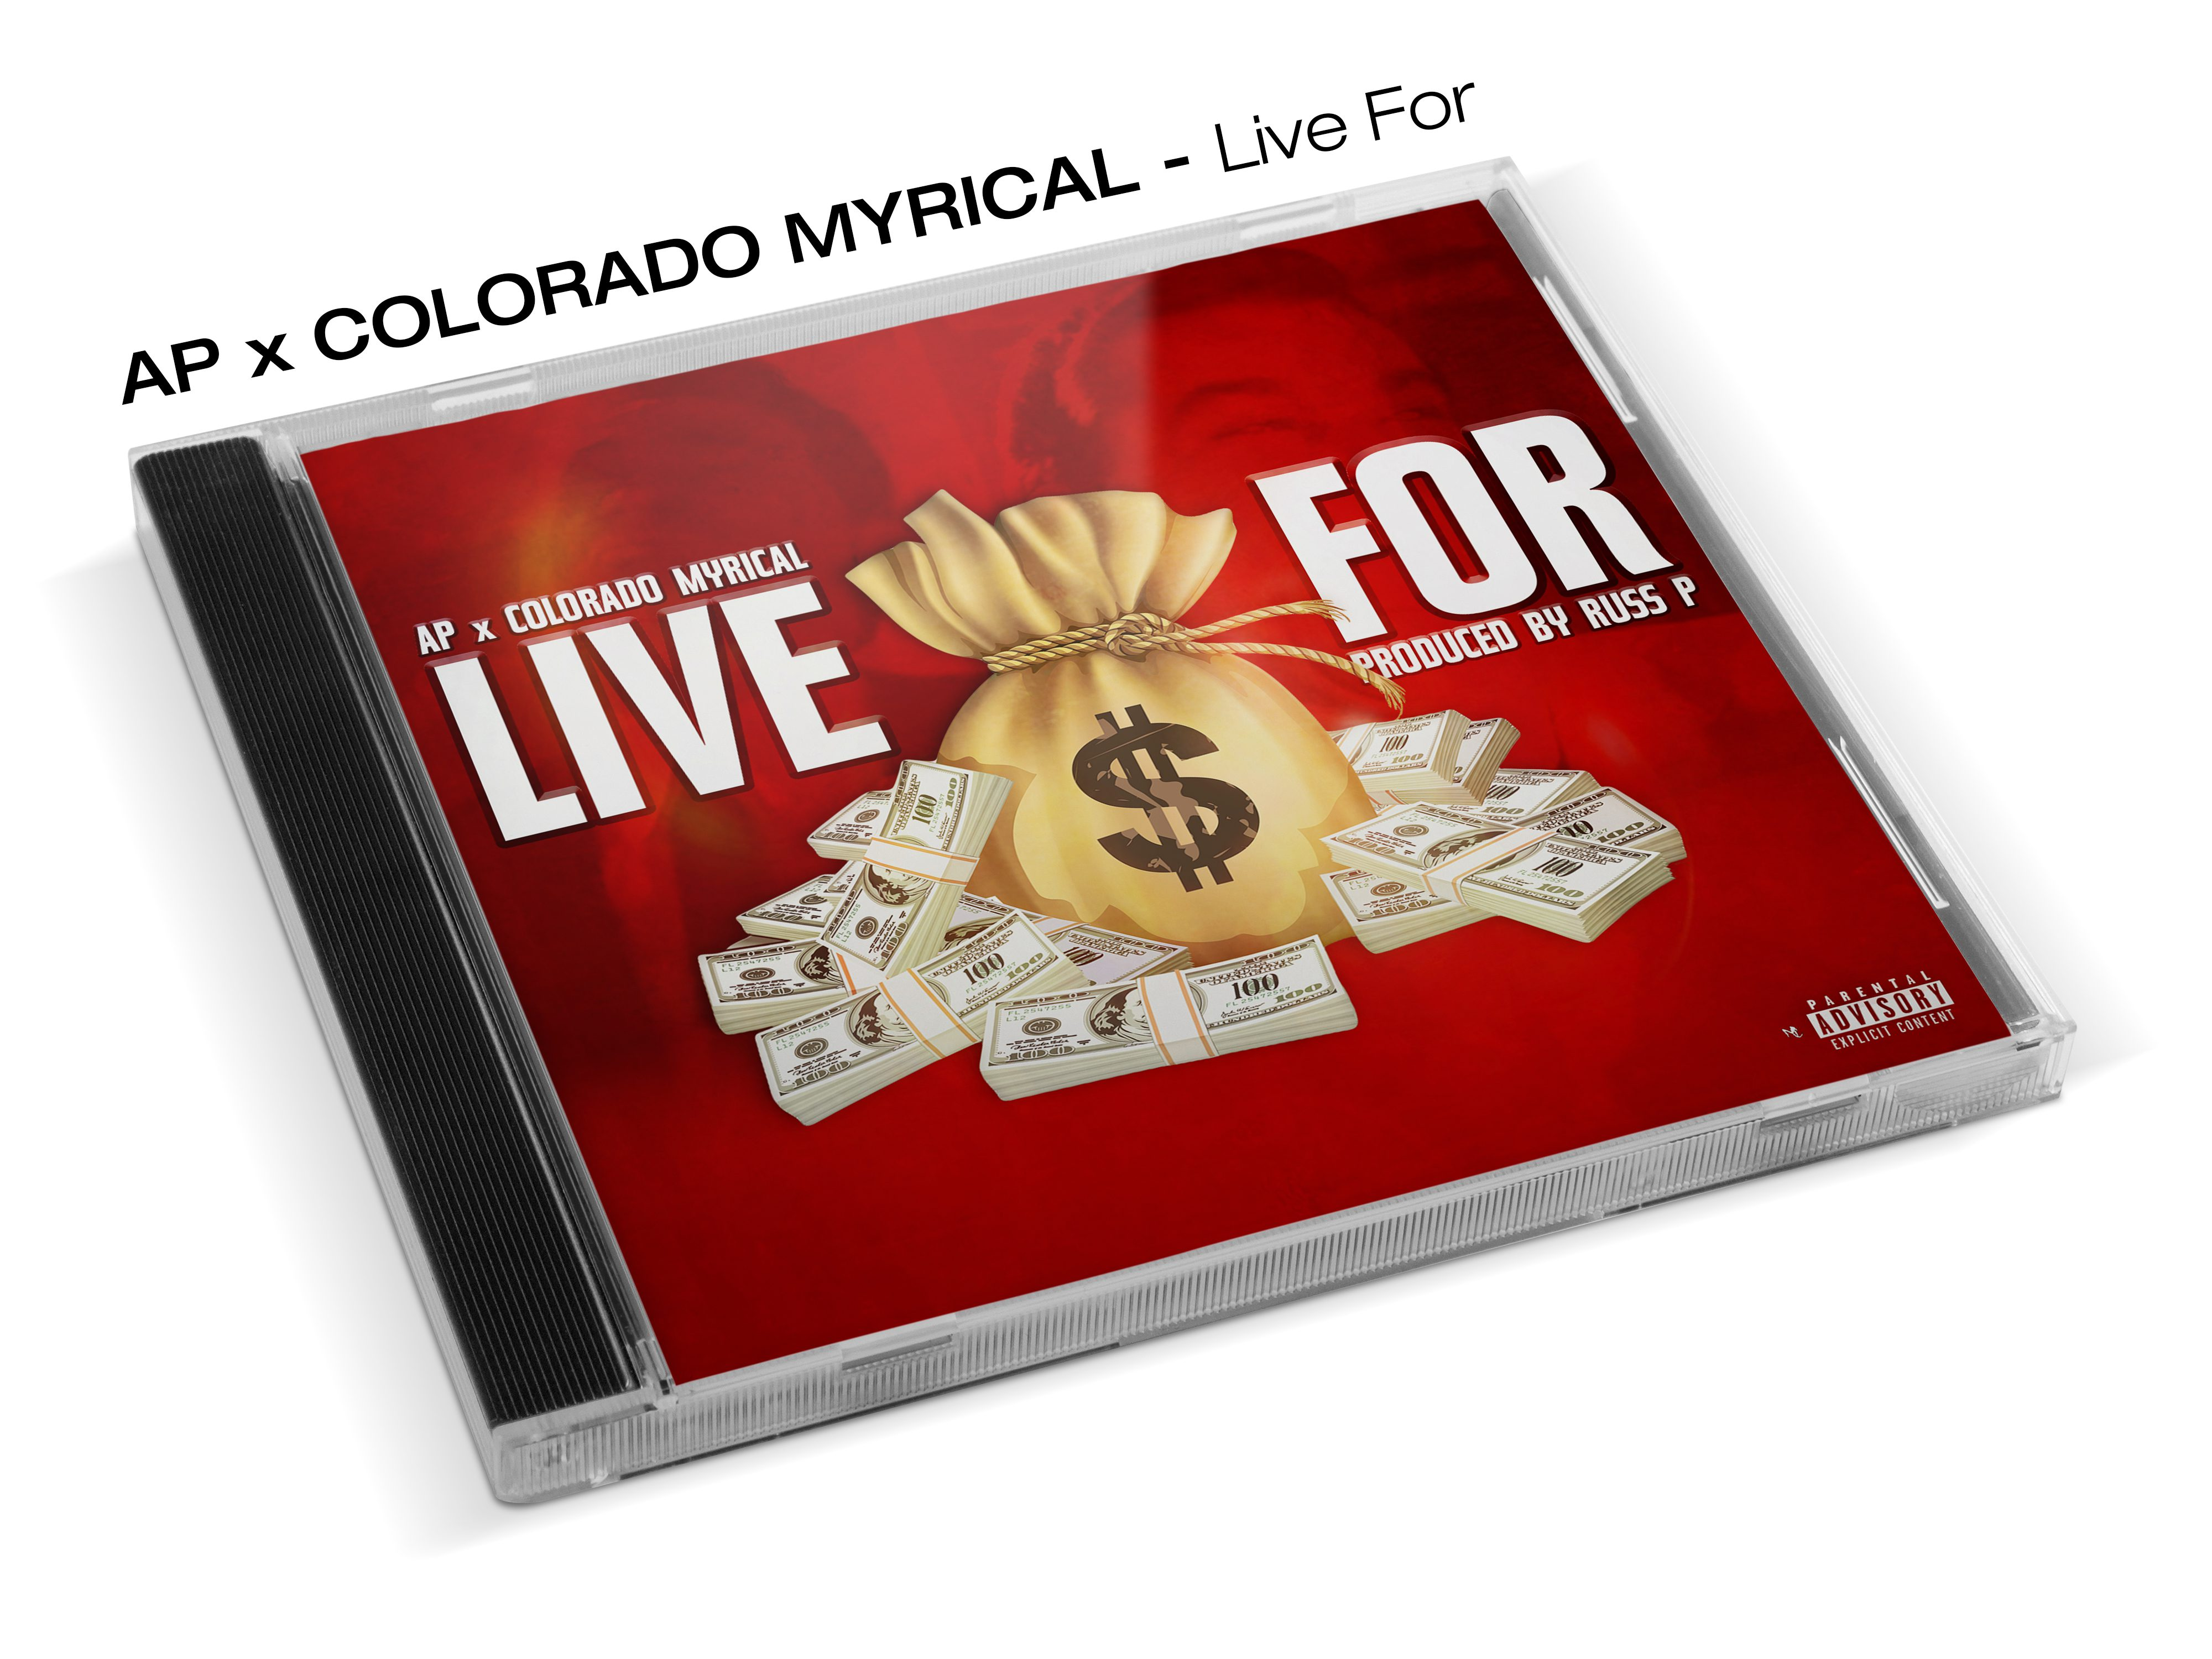 Live For CD